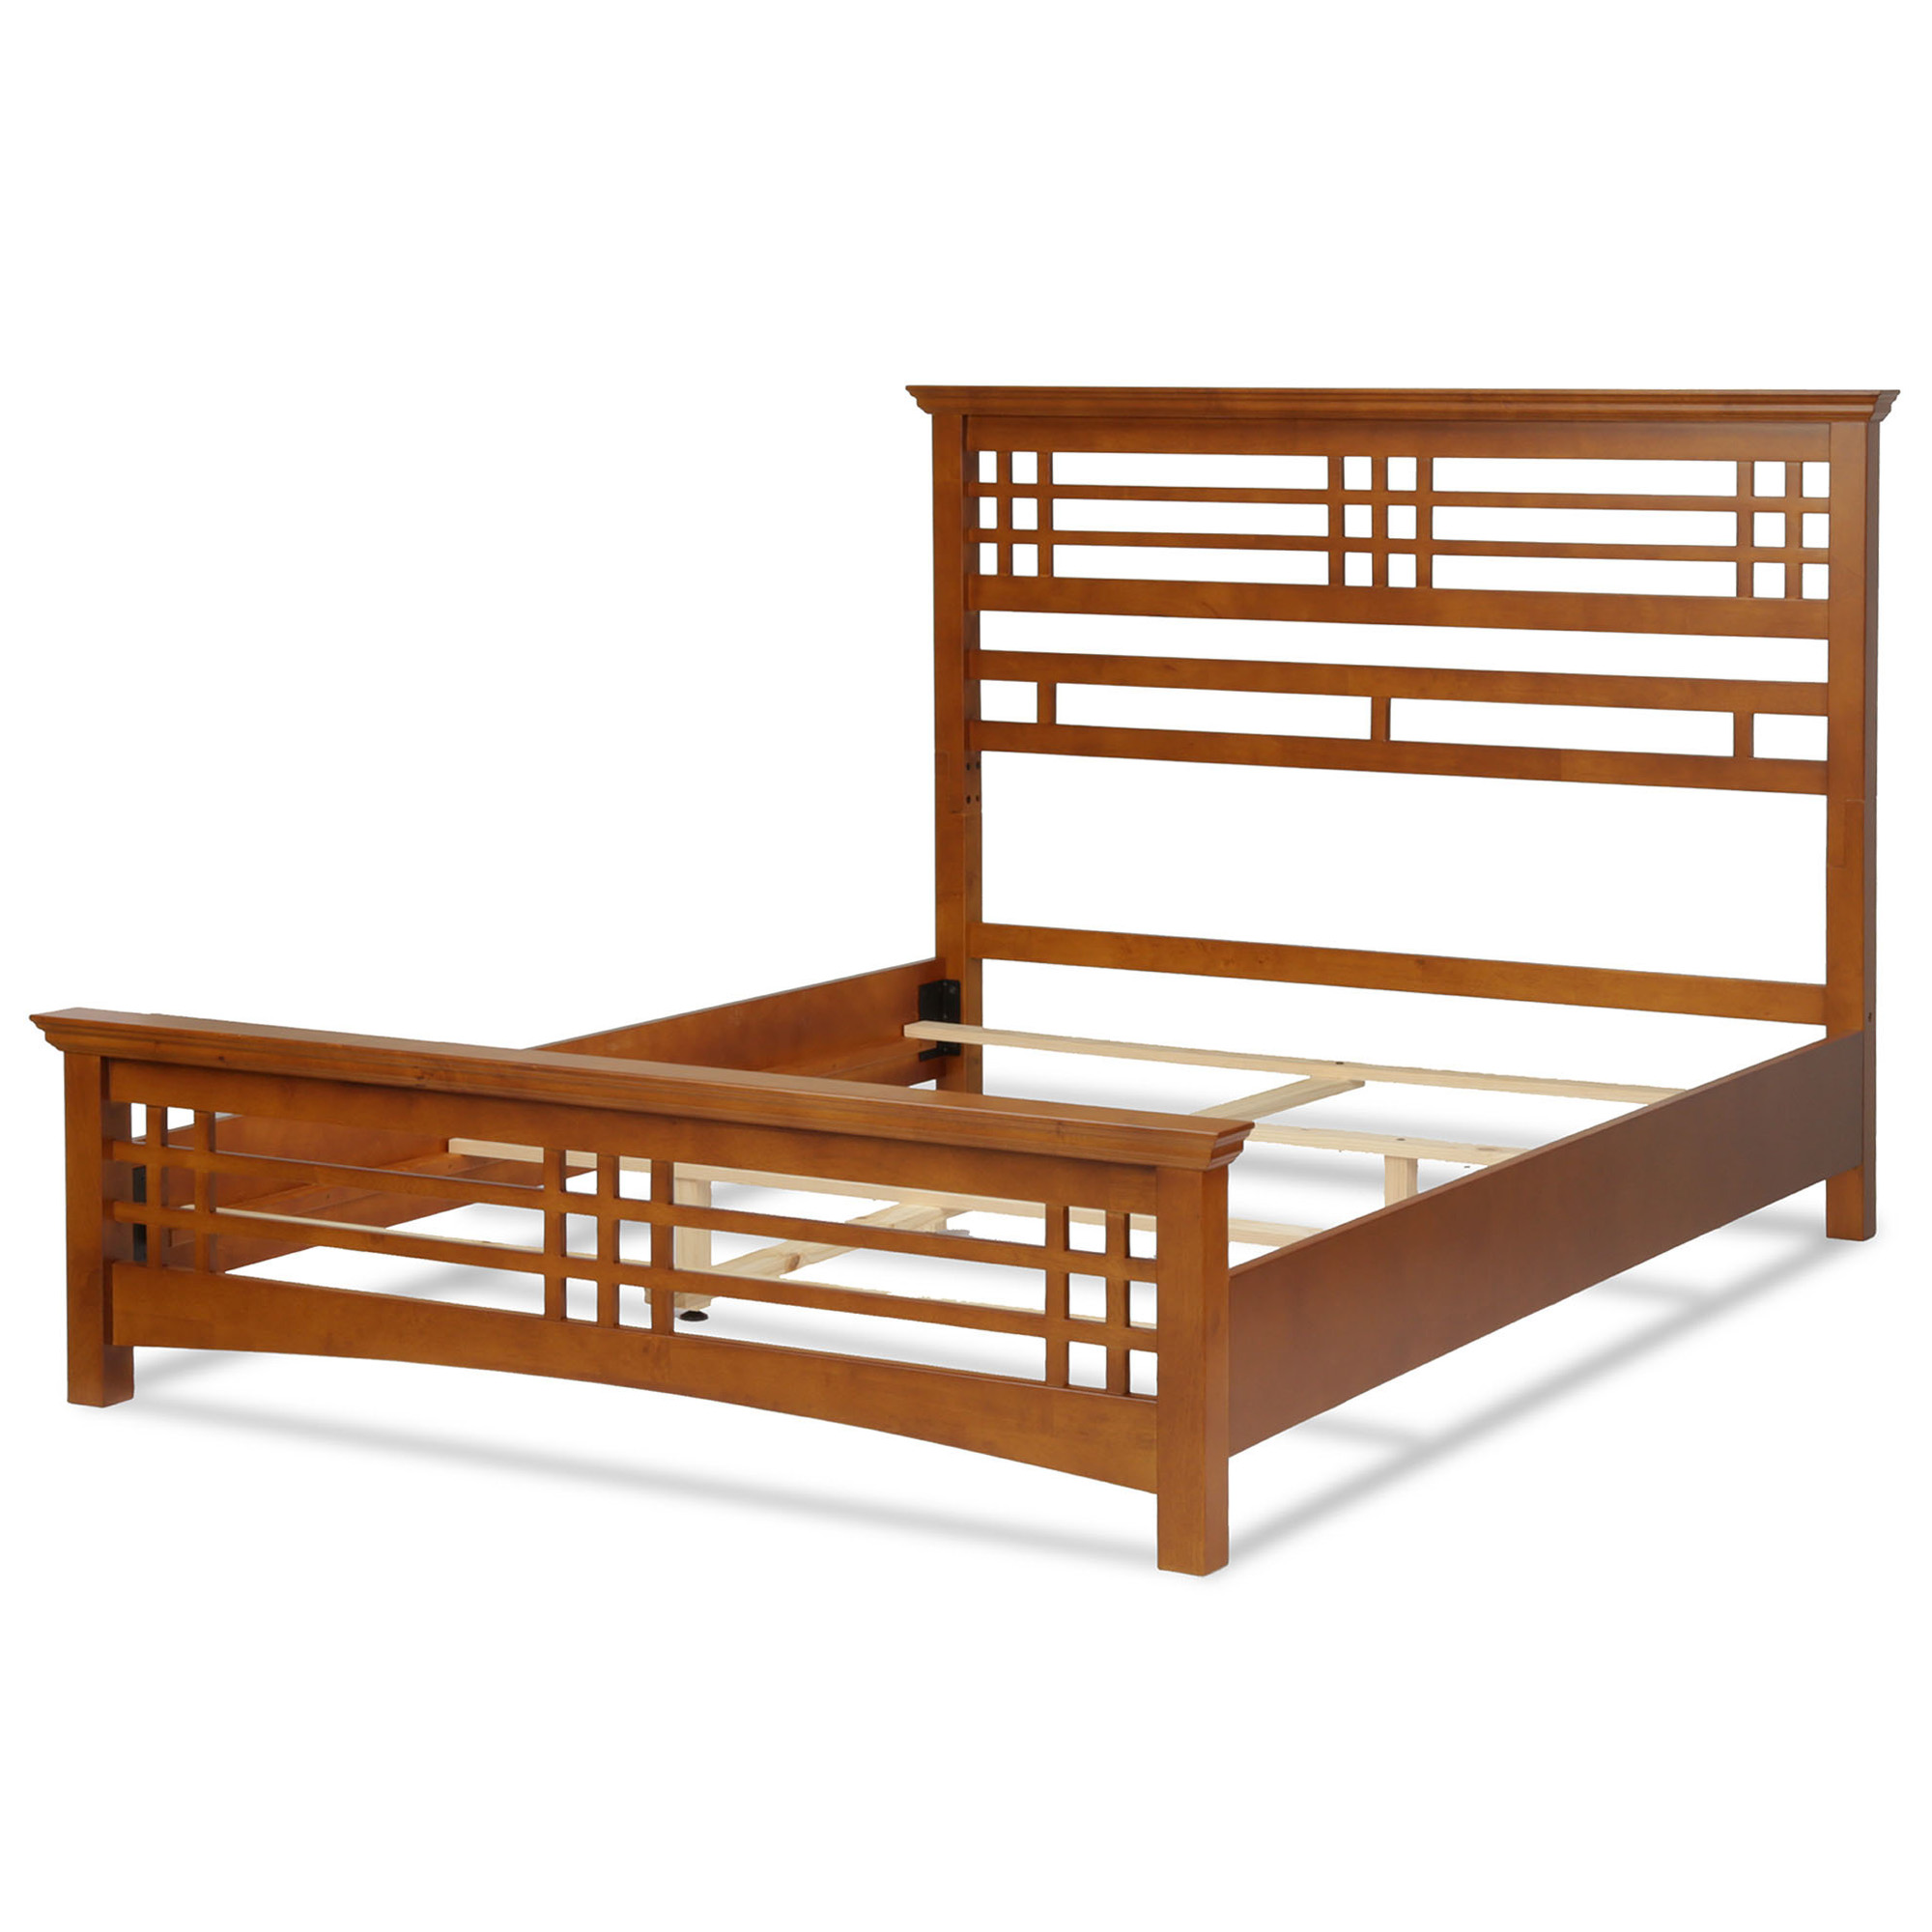 B51a96fashion Bed Group Avery Complete Wood Bed And Bedding Support